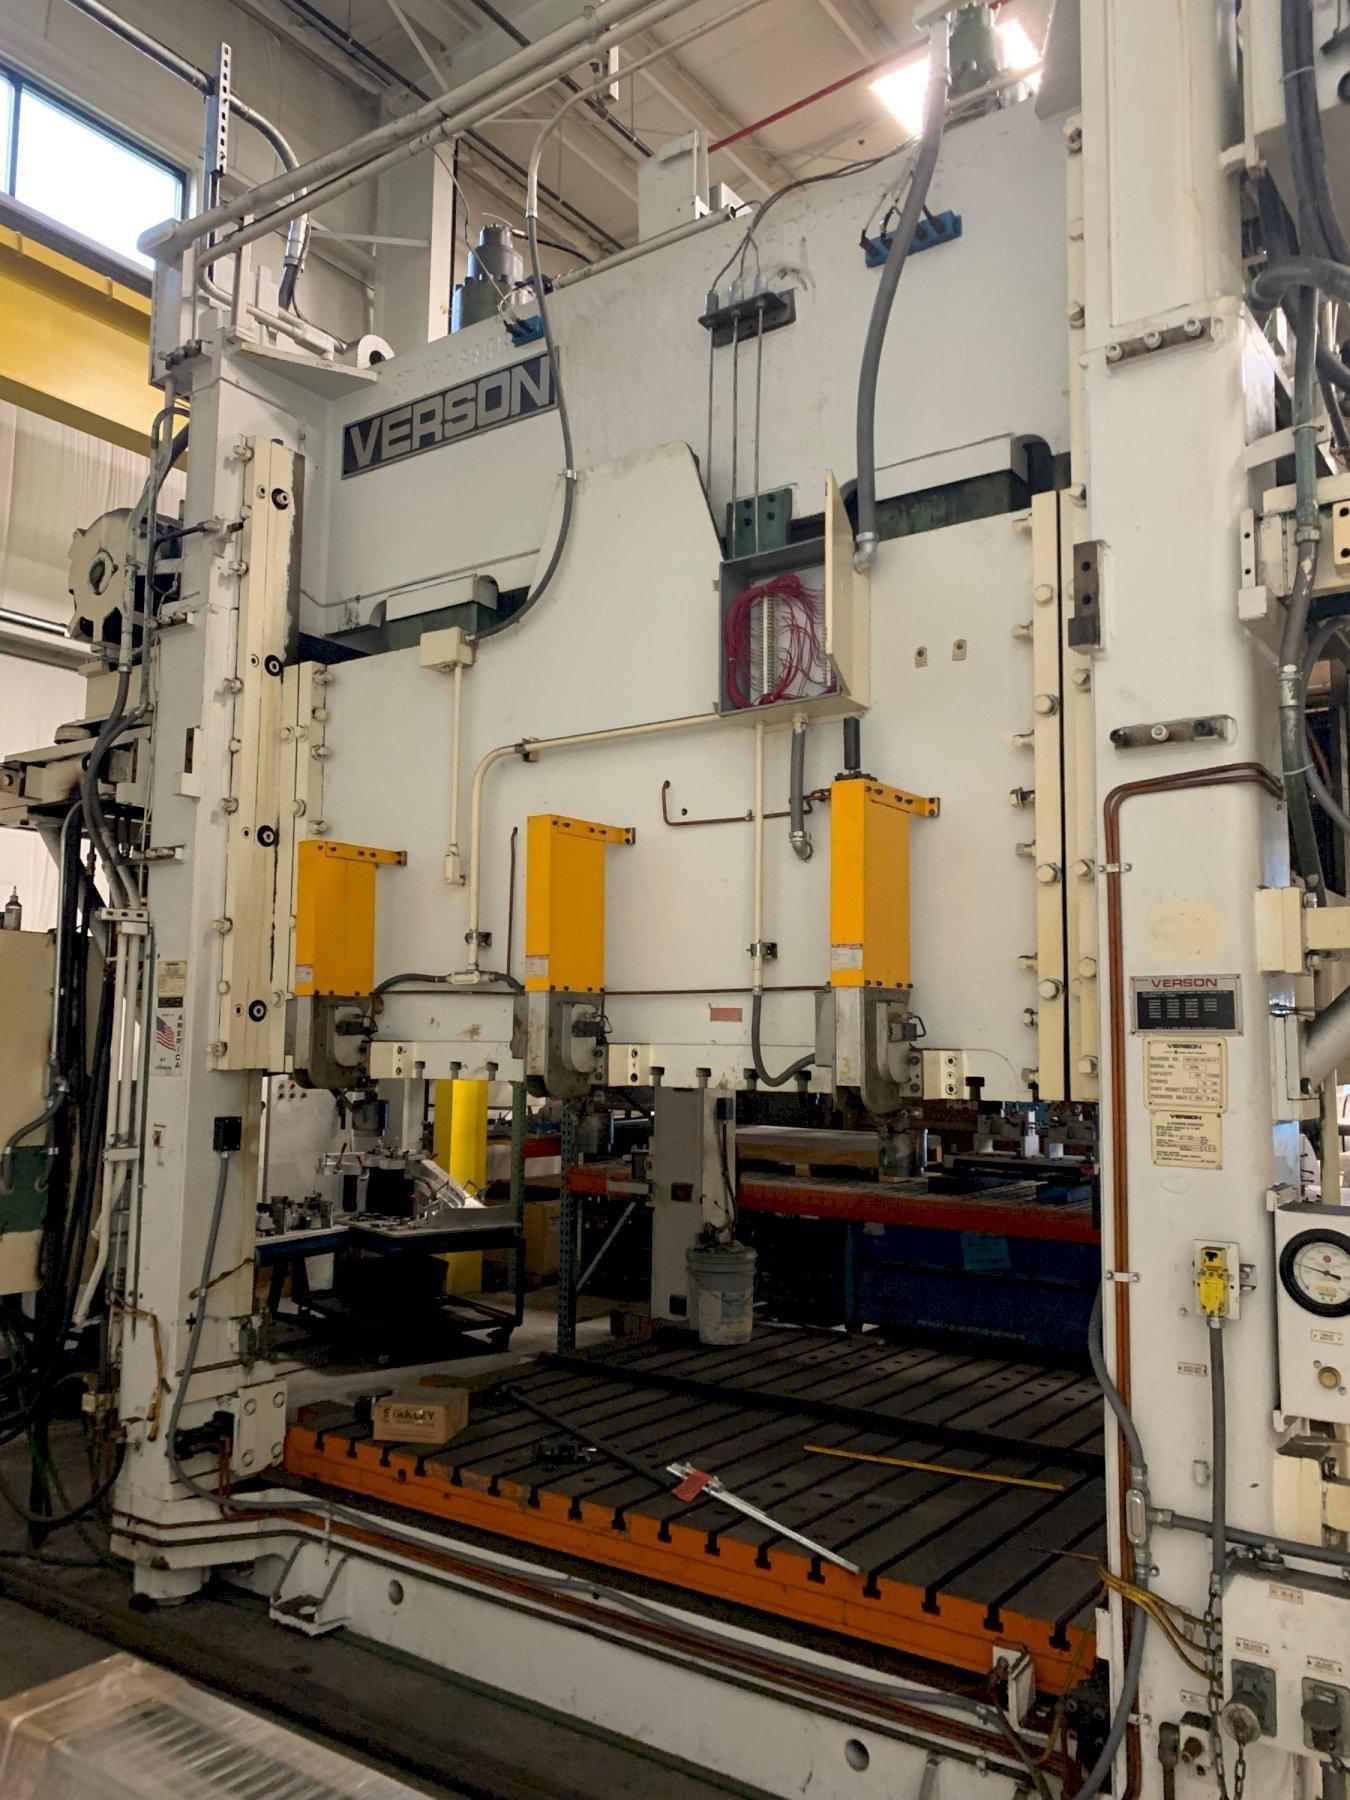 400 TON VERSON 400-HD4-108-964T HYDRAULIC PRESS. STOCK # 0954520